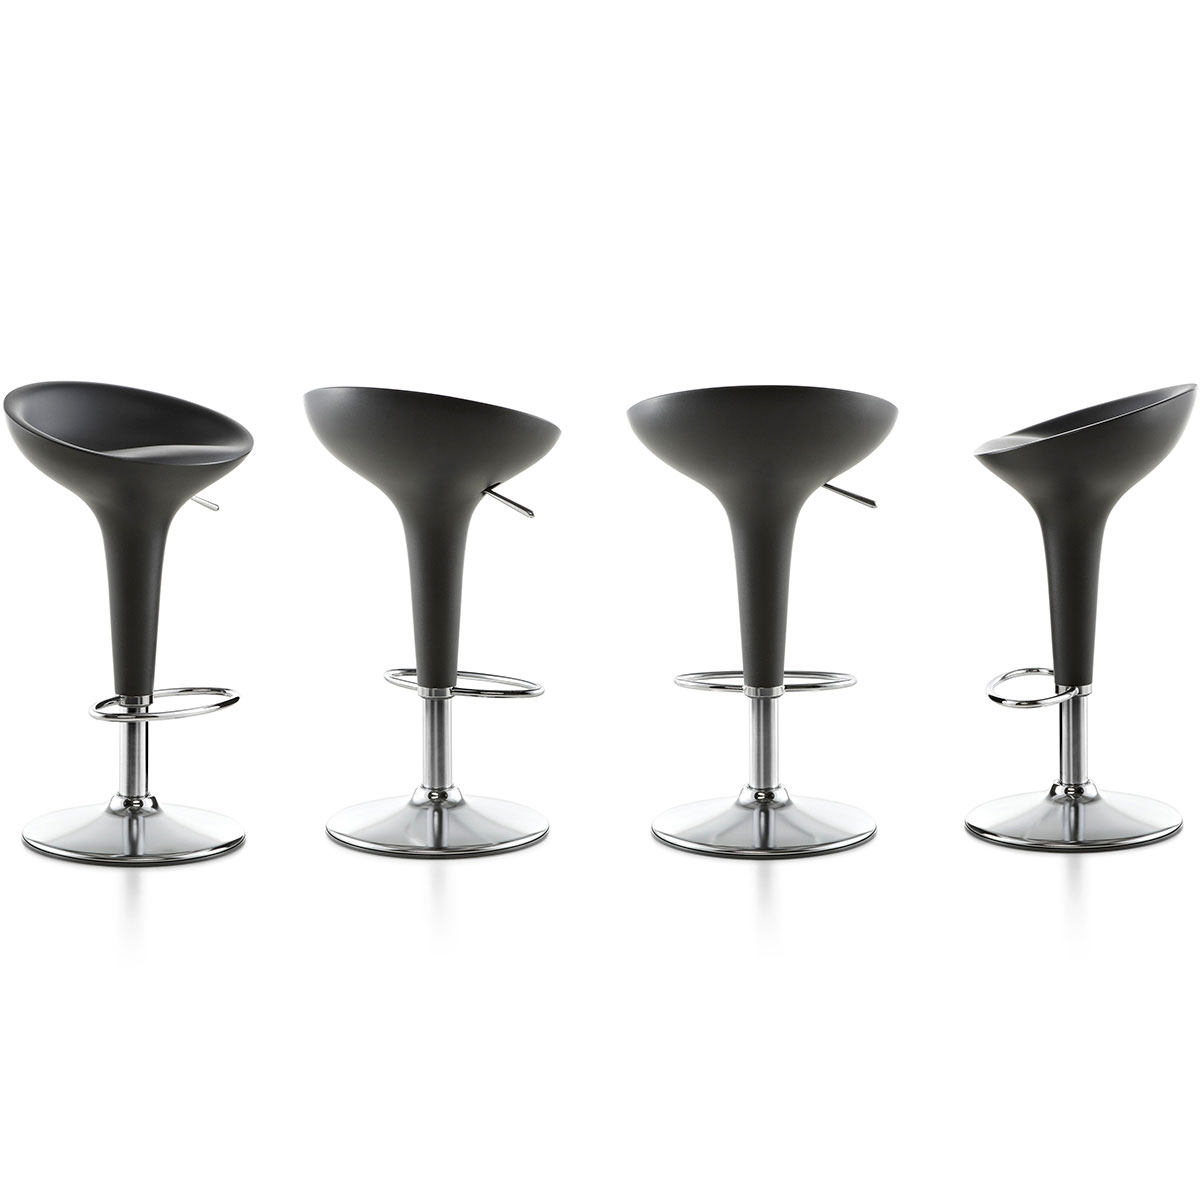 Magis stefano giovannoni bombo adjustable stool for Magis bombo